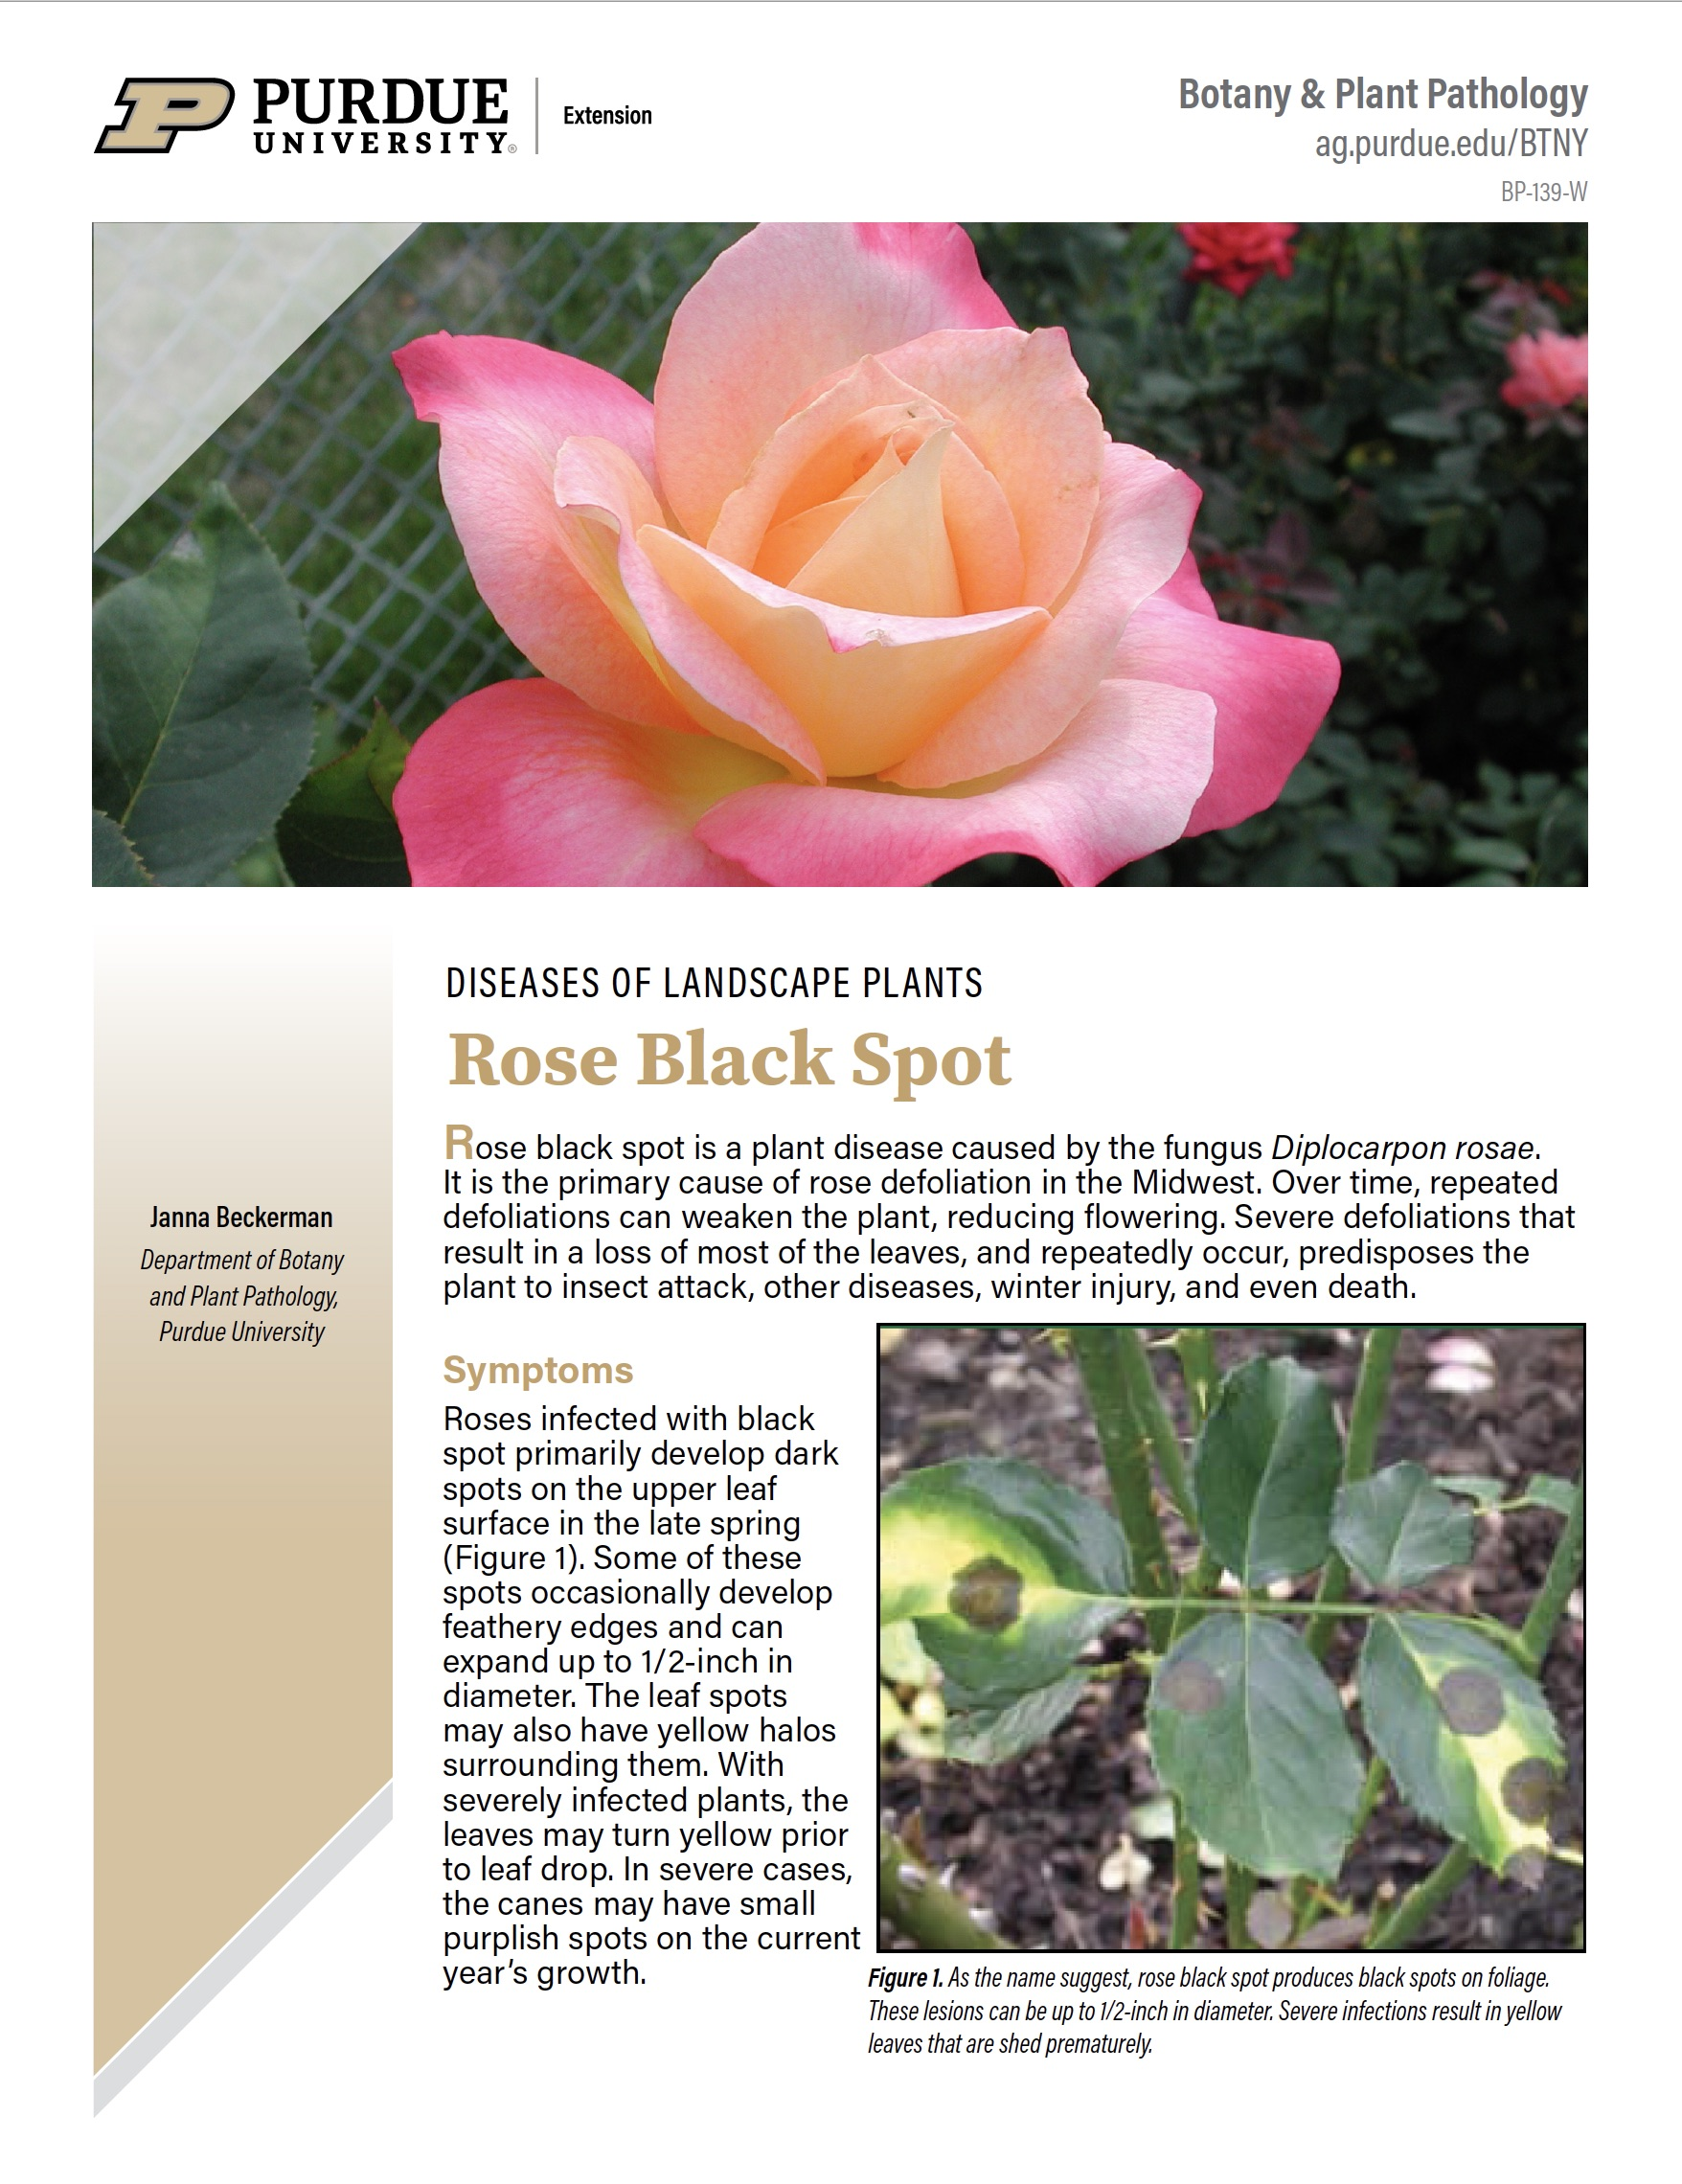 Diseases of Landscape Plants: Rose Black Spot